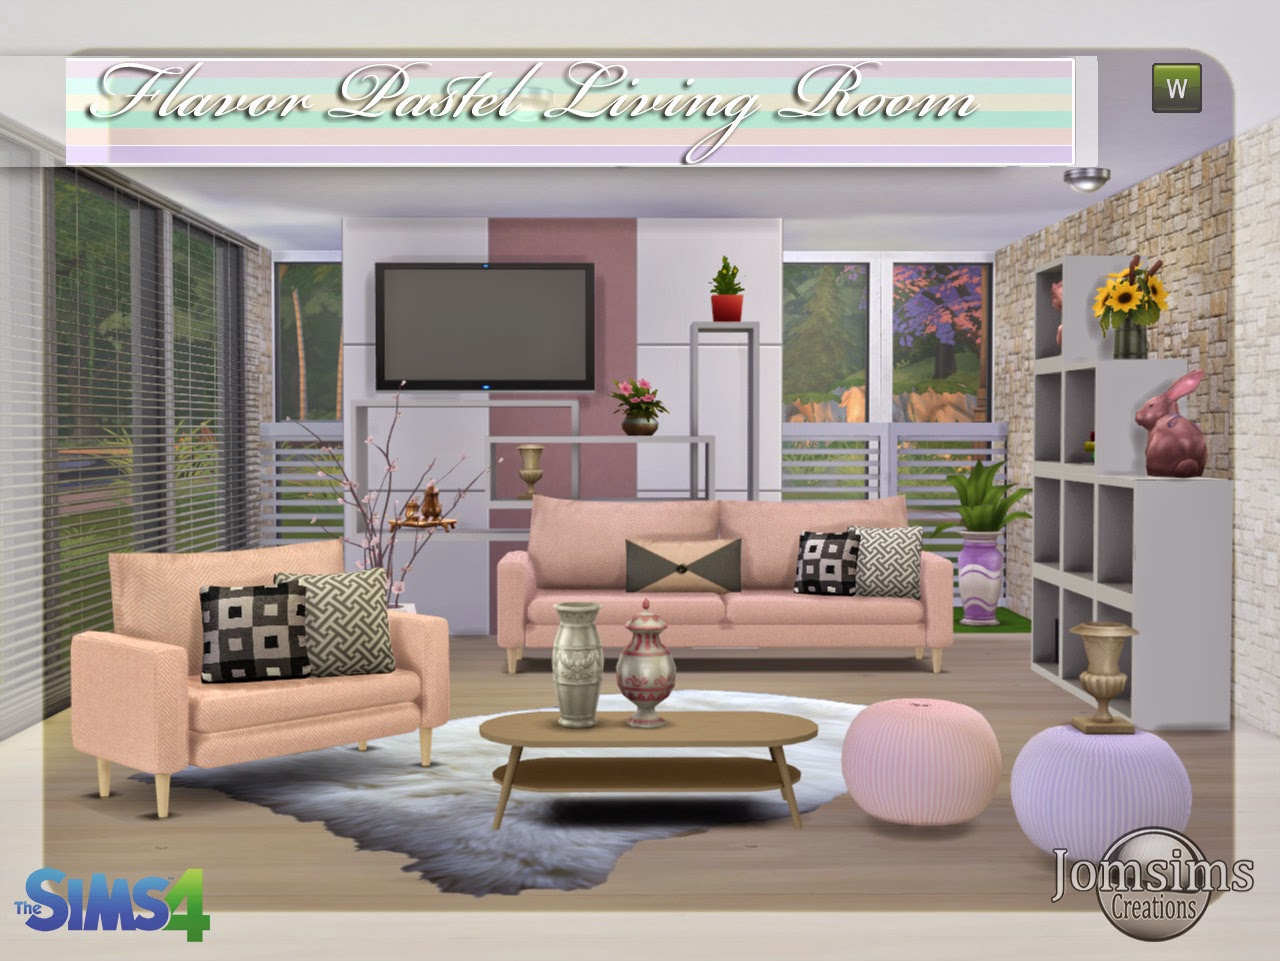 jomsimscreations blog: New living room sims 4 flavor ...